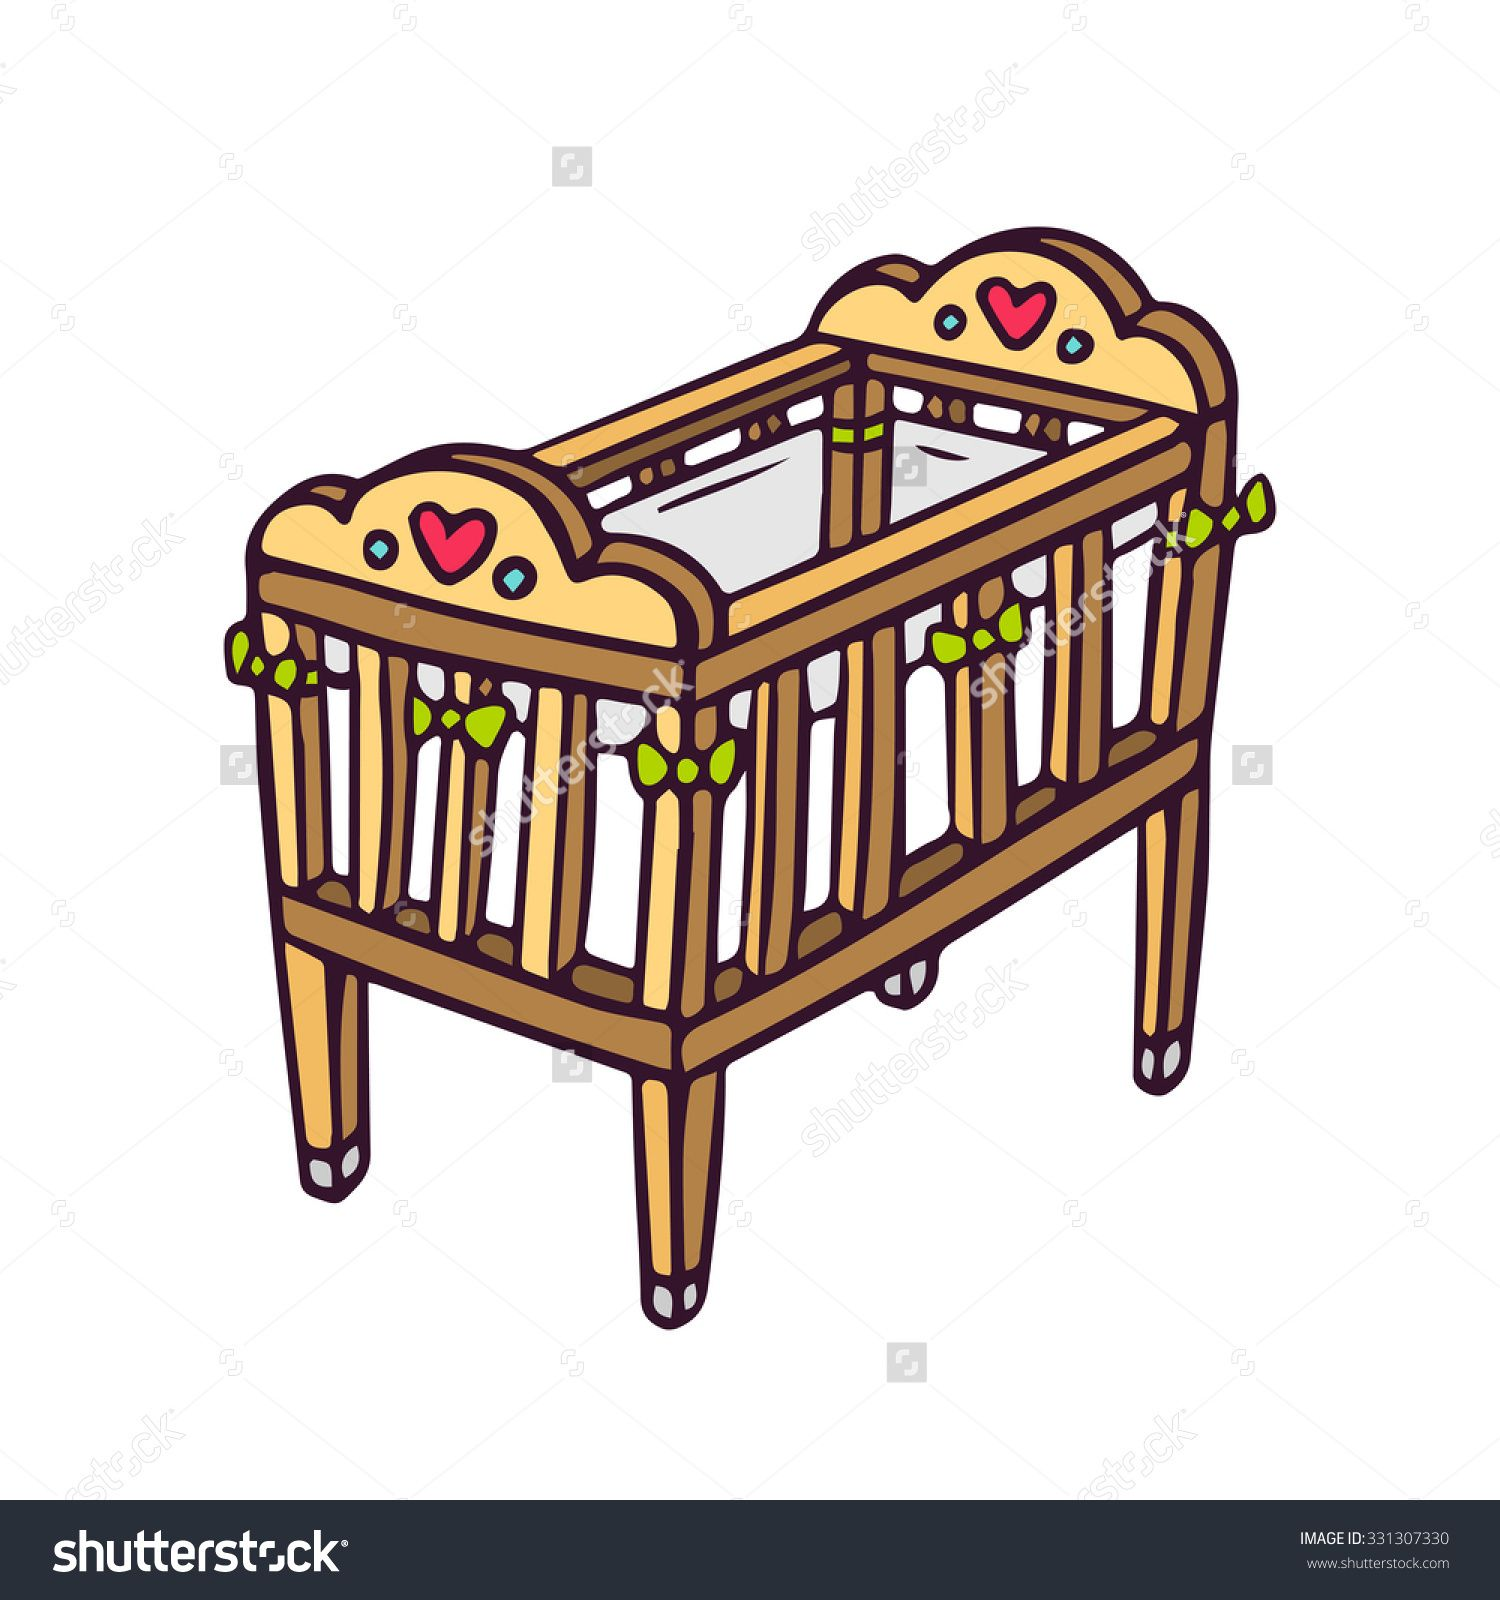 Clipart Cot Clip Arts Galleries Baby Cribs For Sale Baby Cribs Cribs